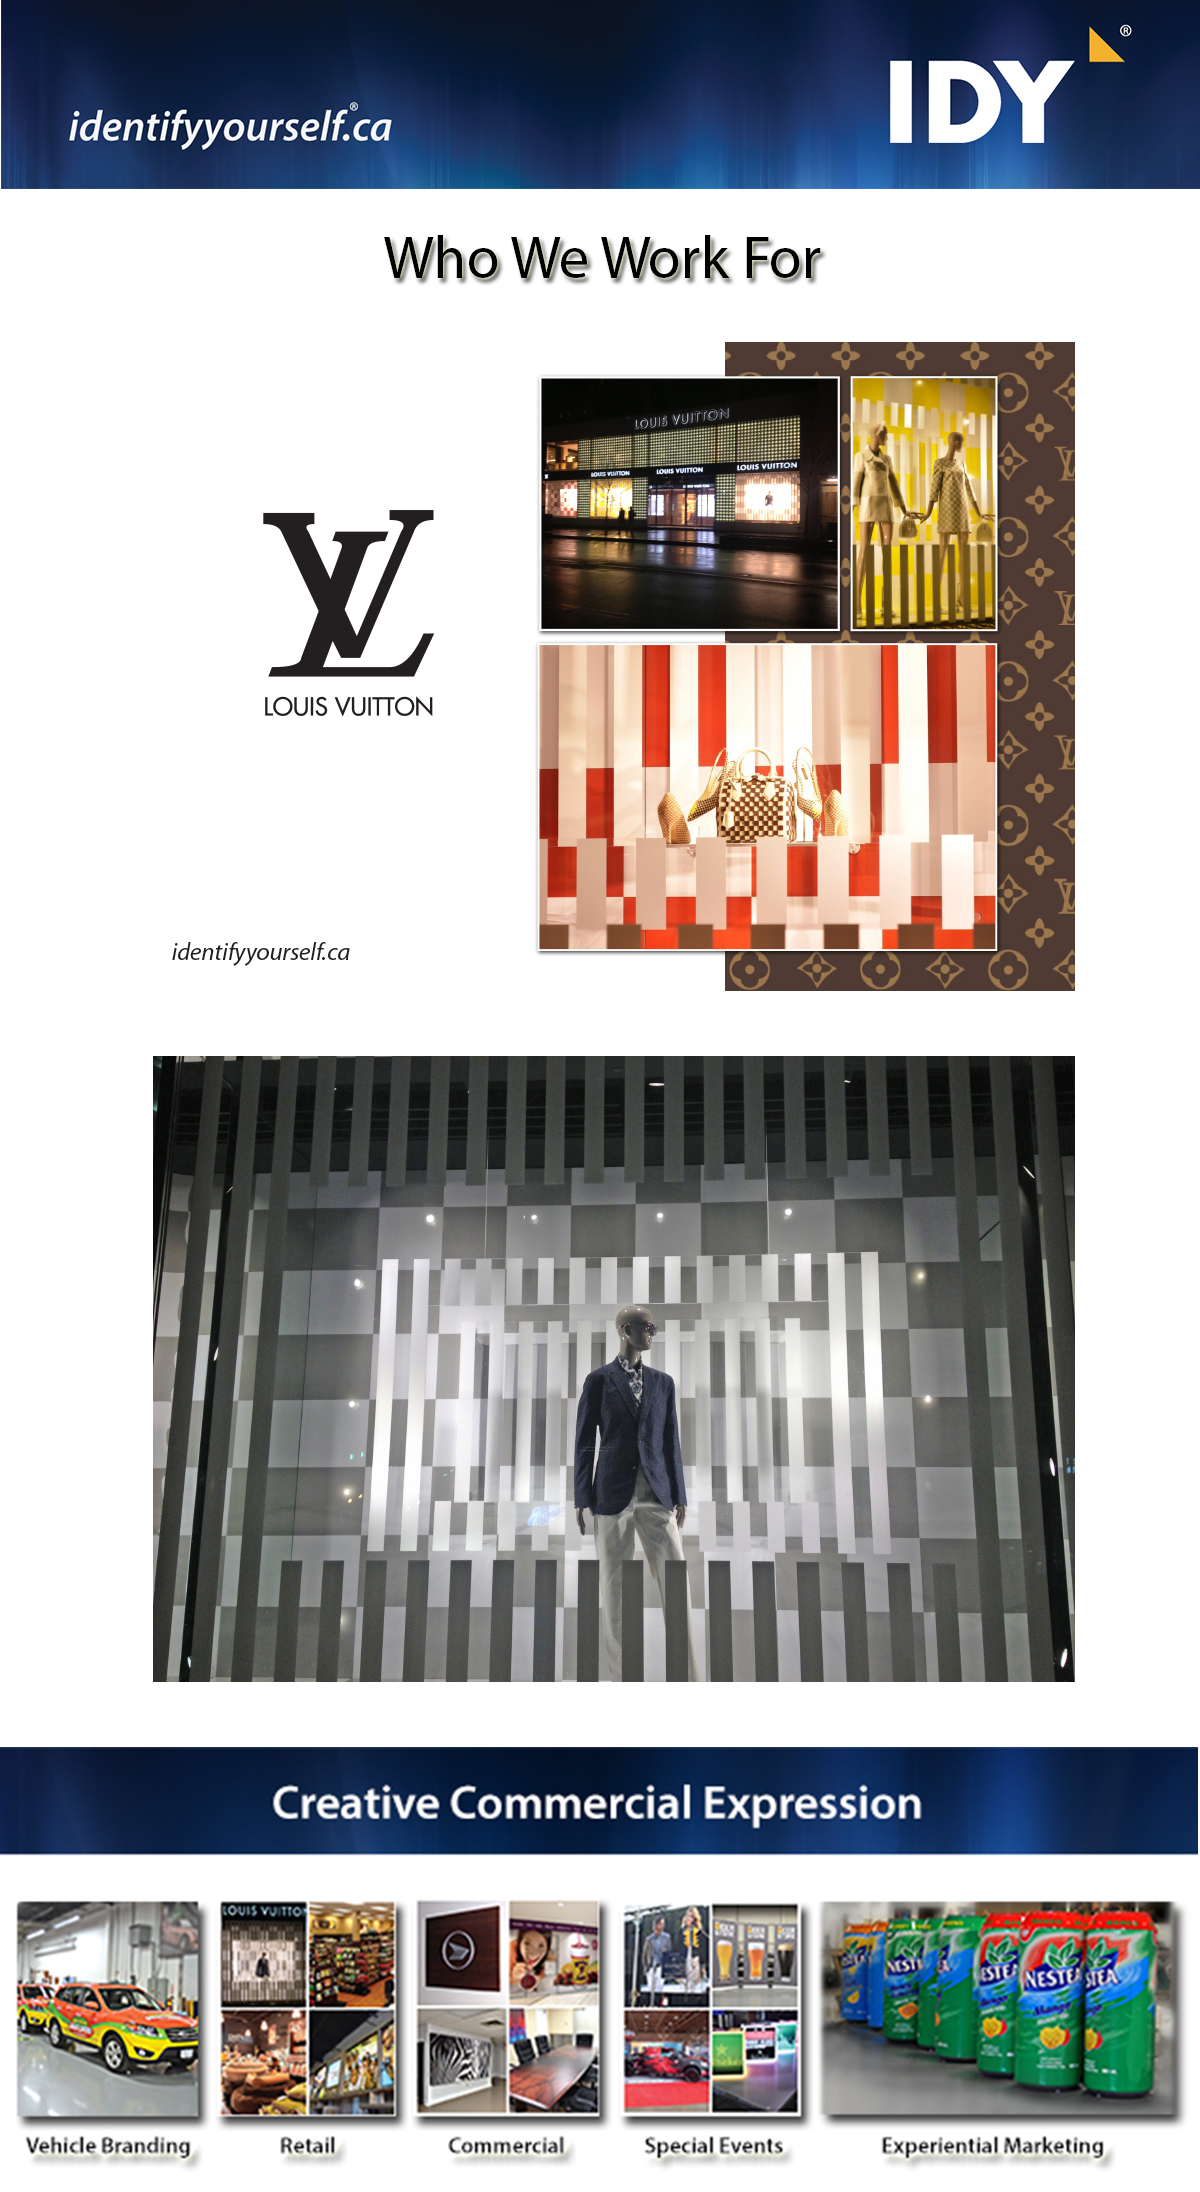 Who-We-Are_Louis-Vuitton_Identifyyourself.ca